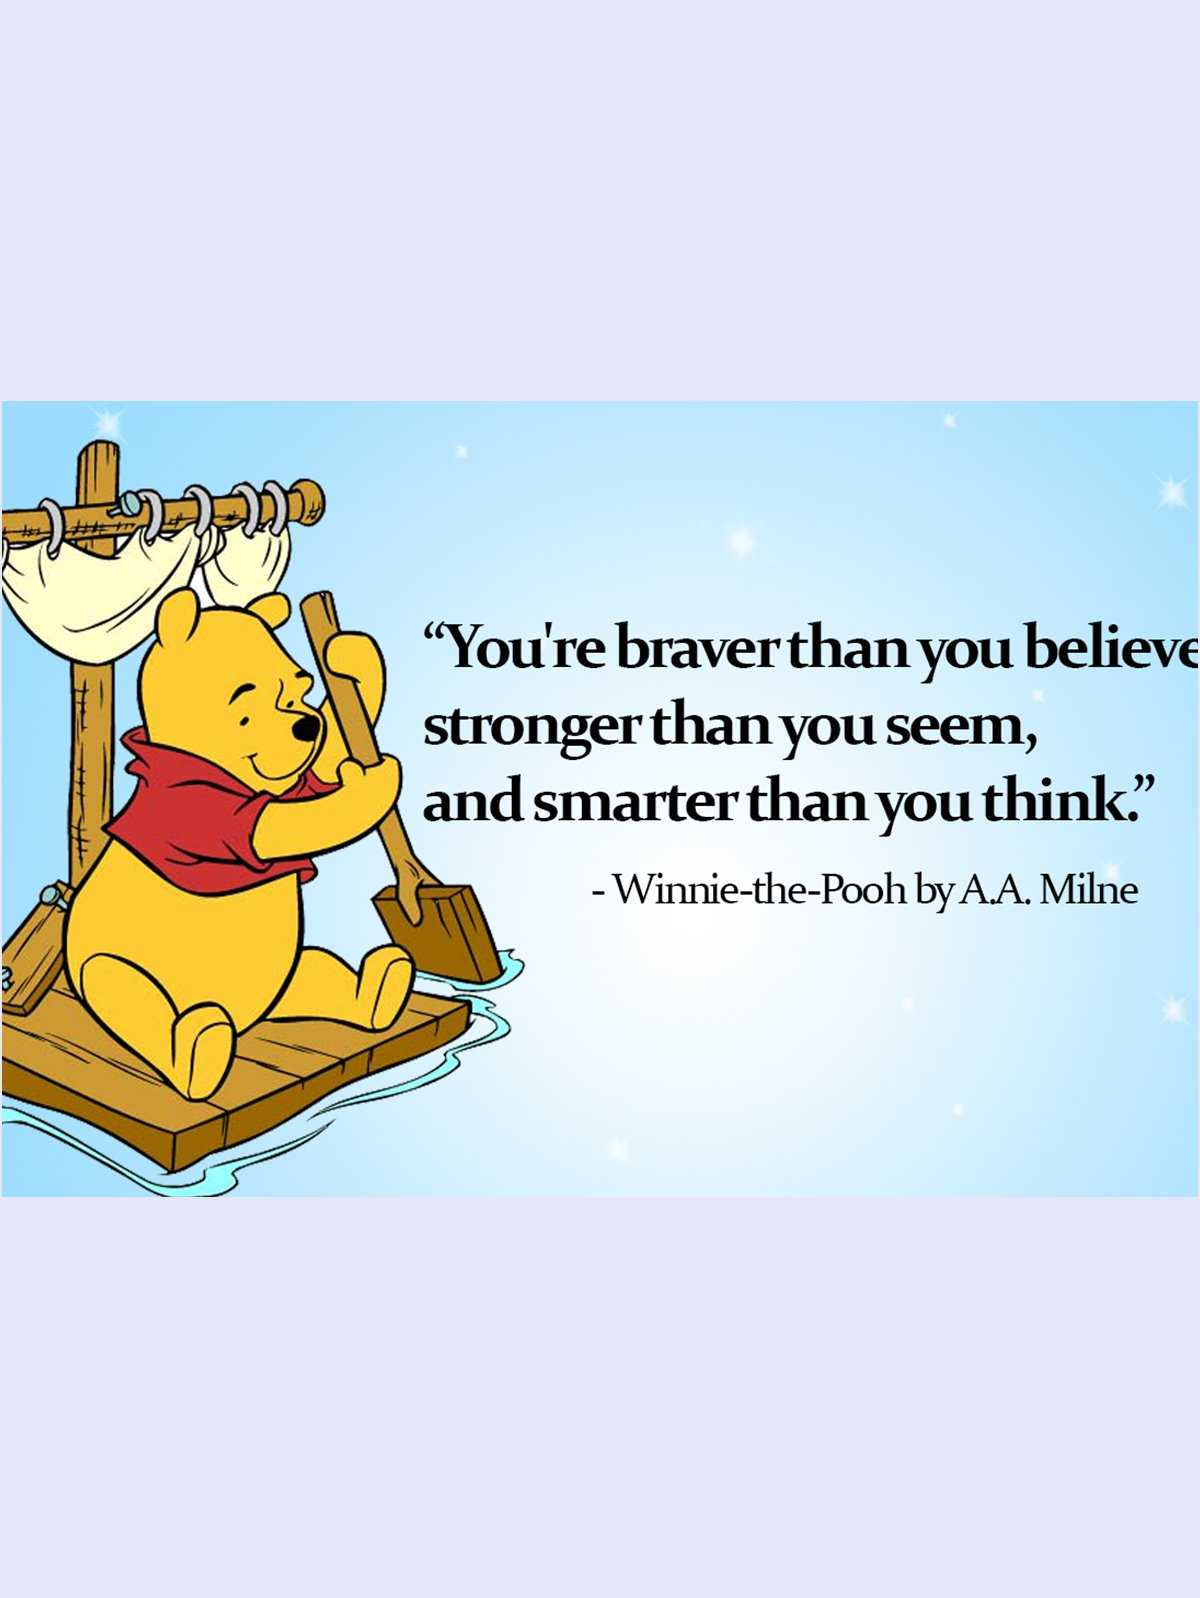 Winnie The Pooh Quotes About Life 86 Winnie The Pooh Quotes To Fill Your Heart With Joy  Boomsumo